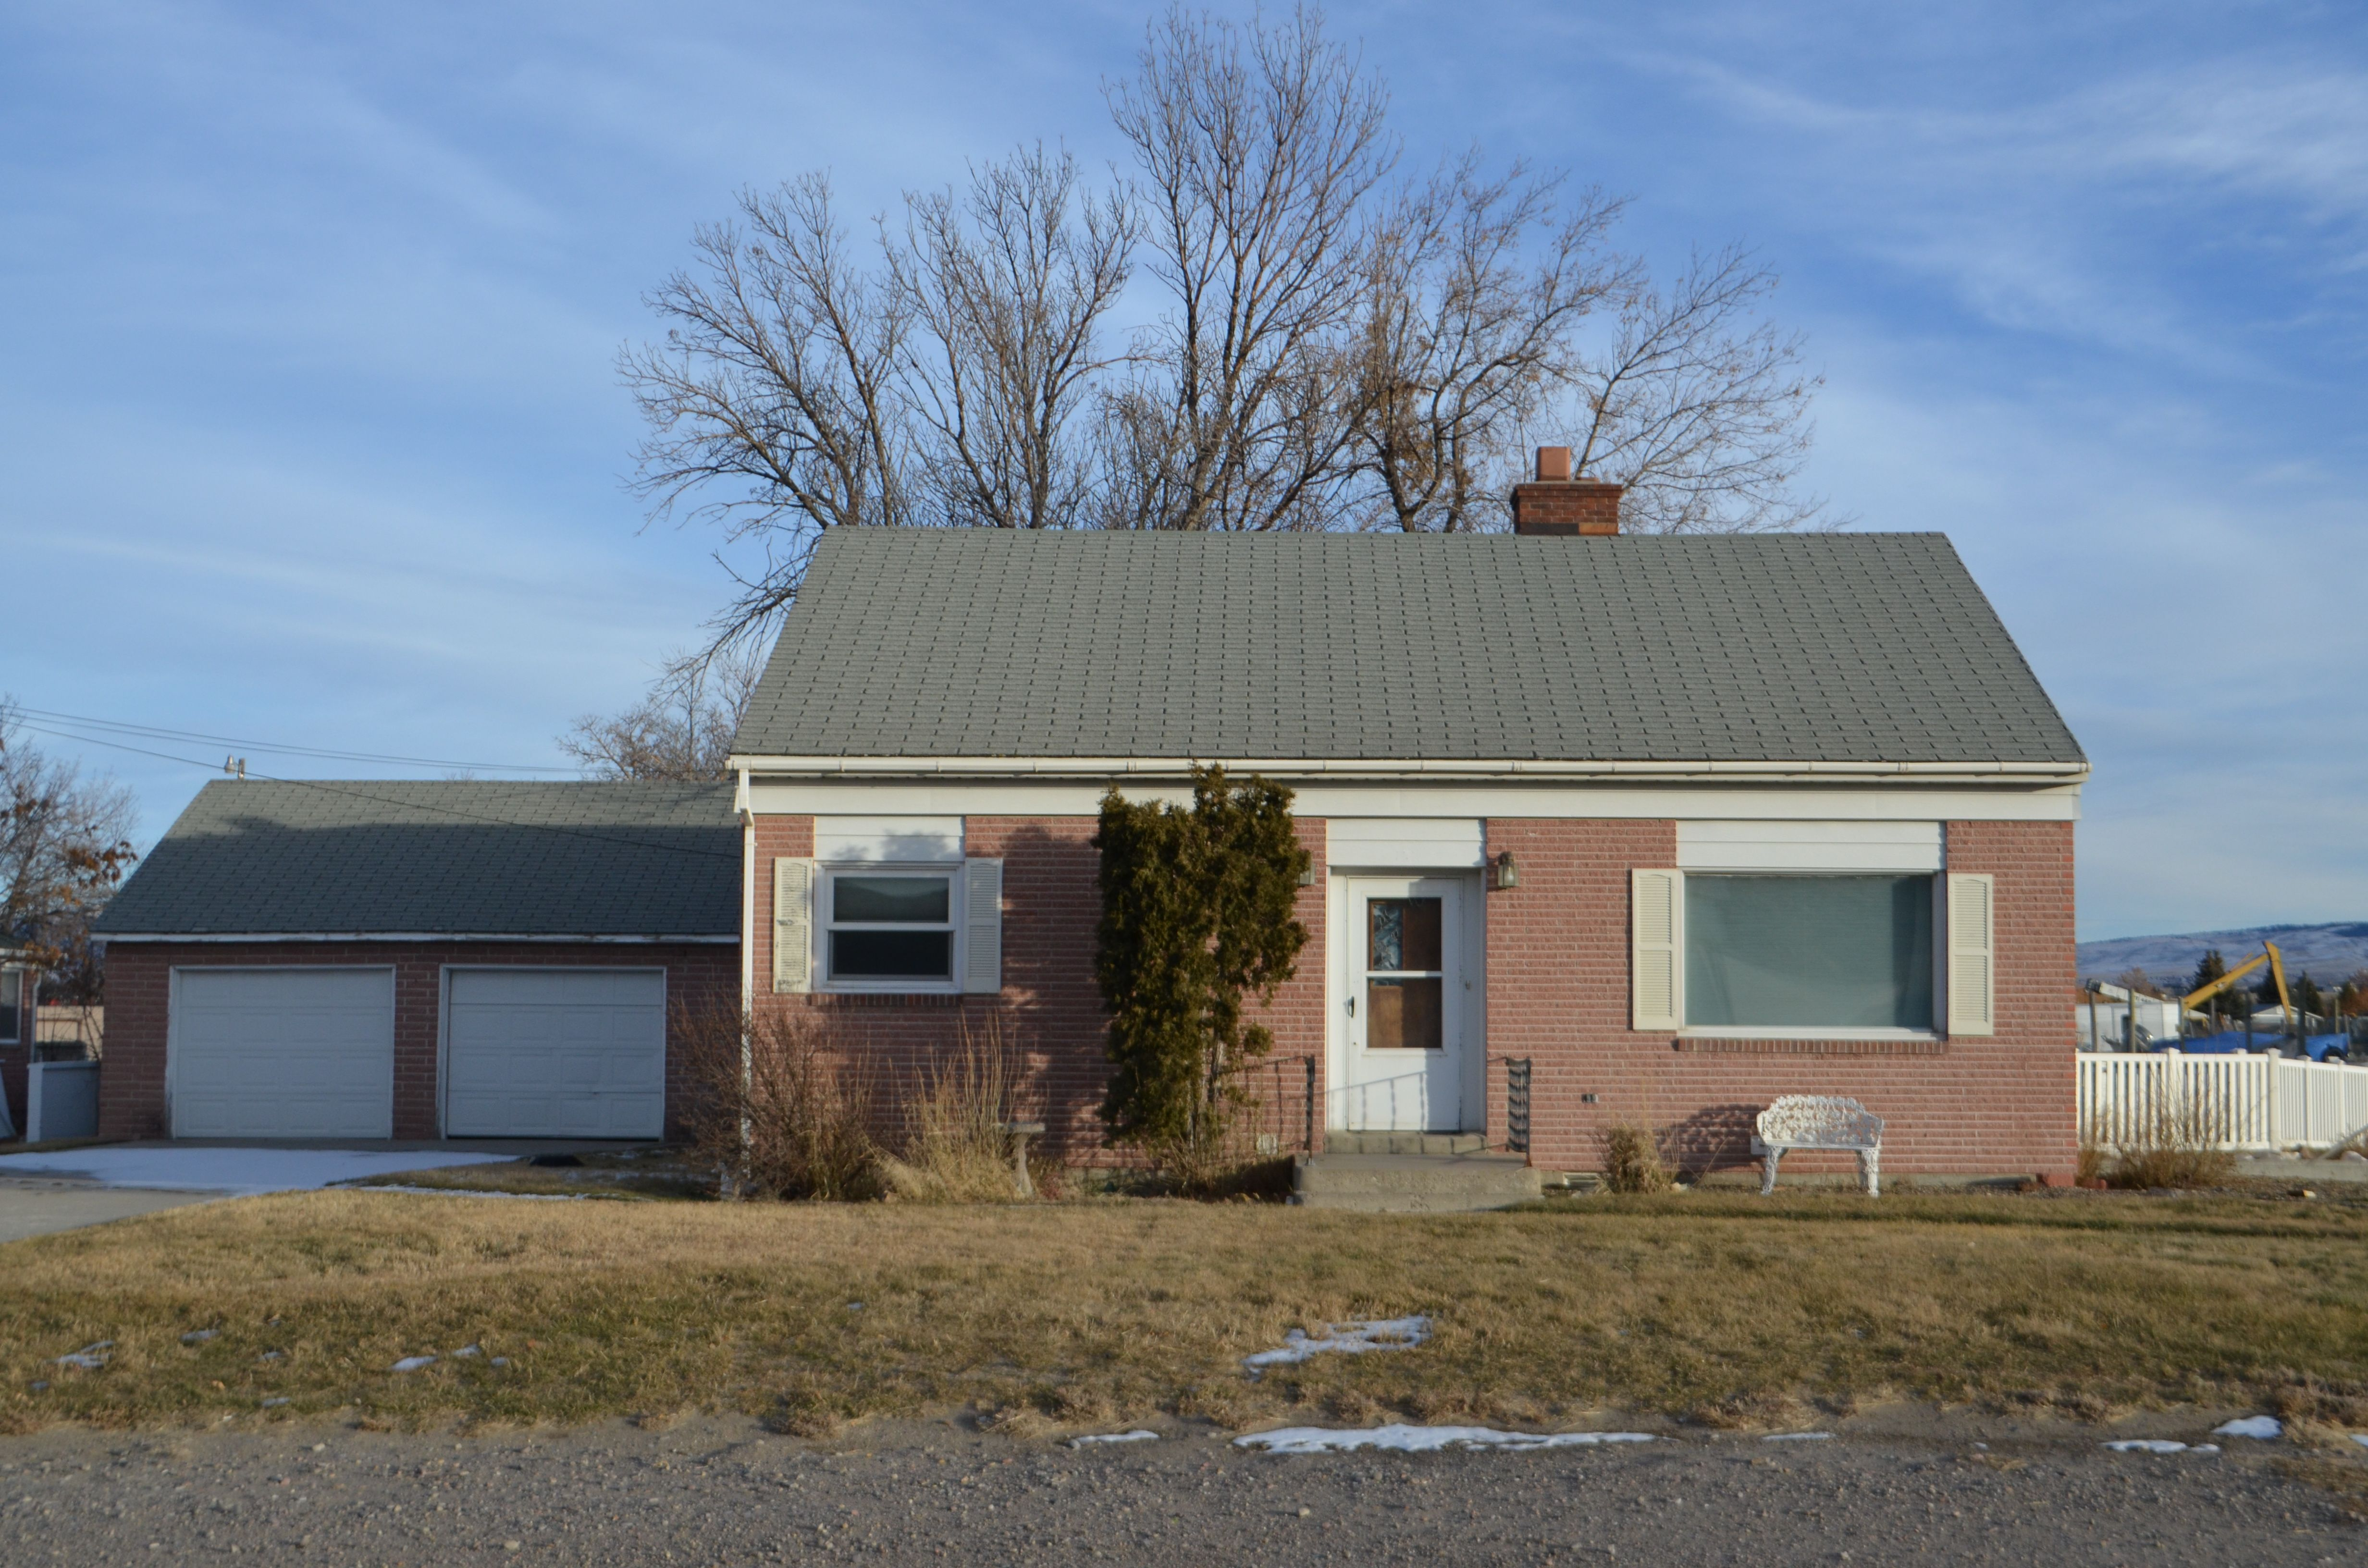 750 No. Montana St. 259,900 Great location, great